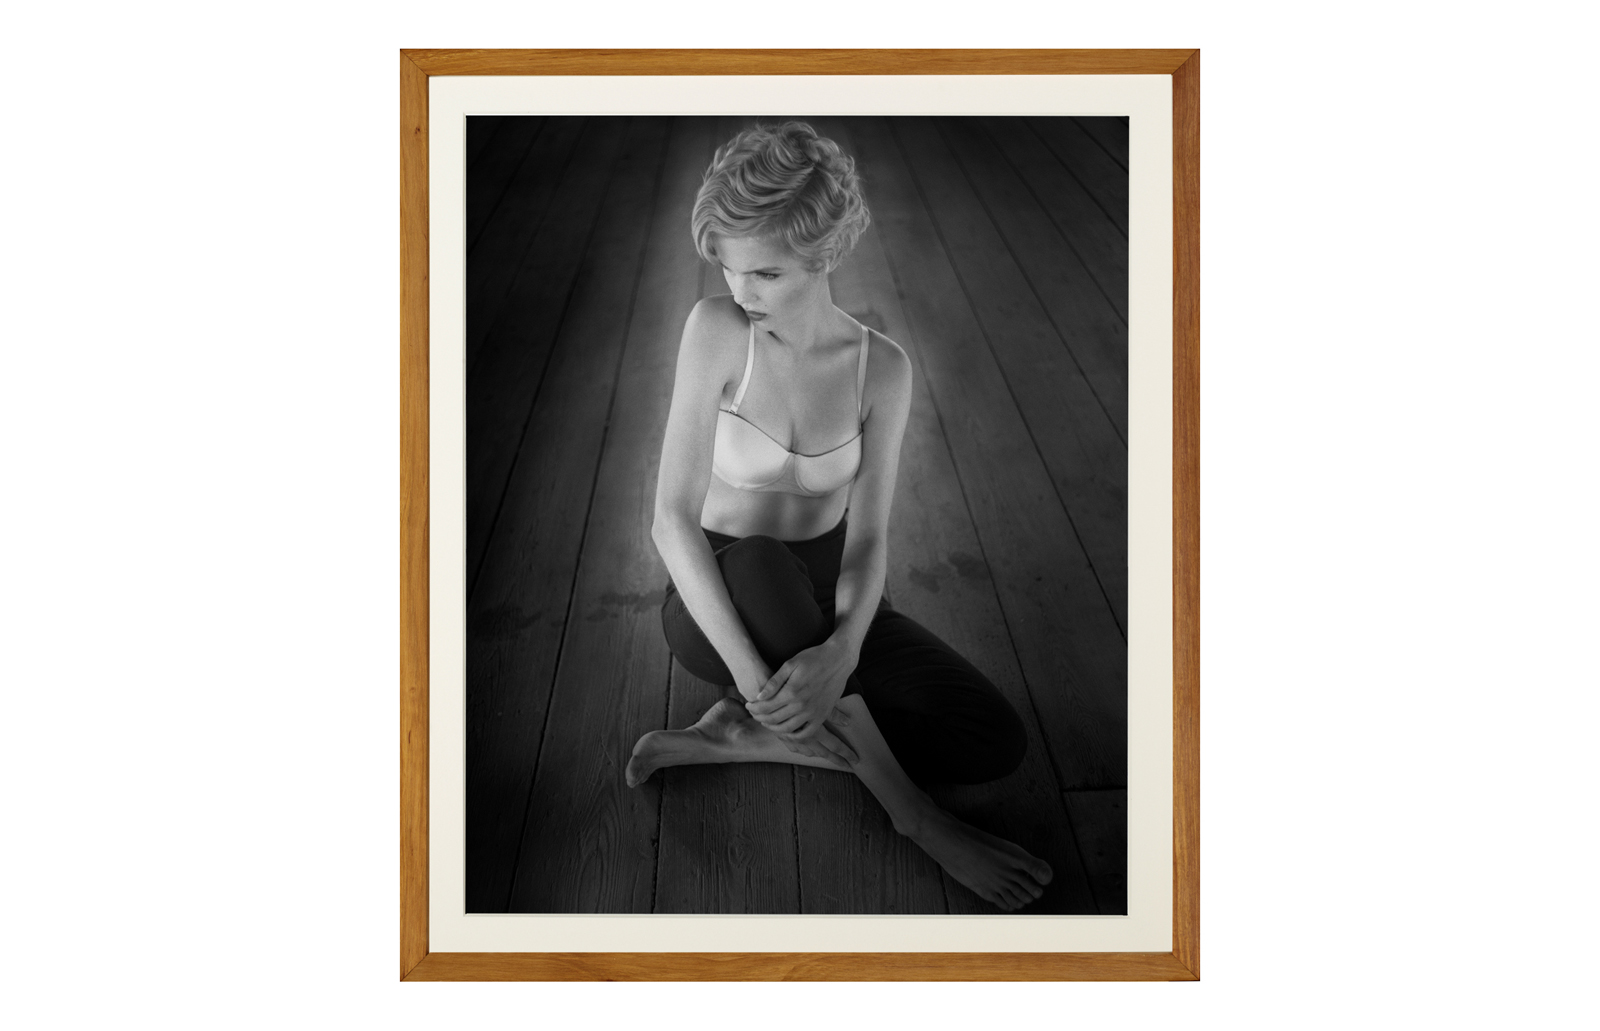 fine art photography, vintage photography